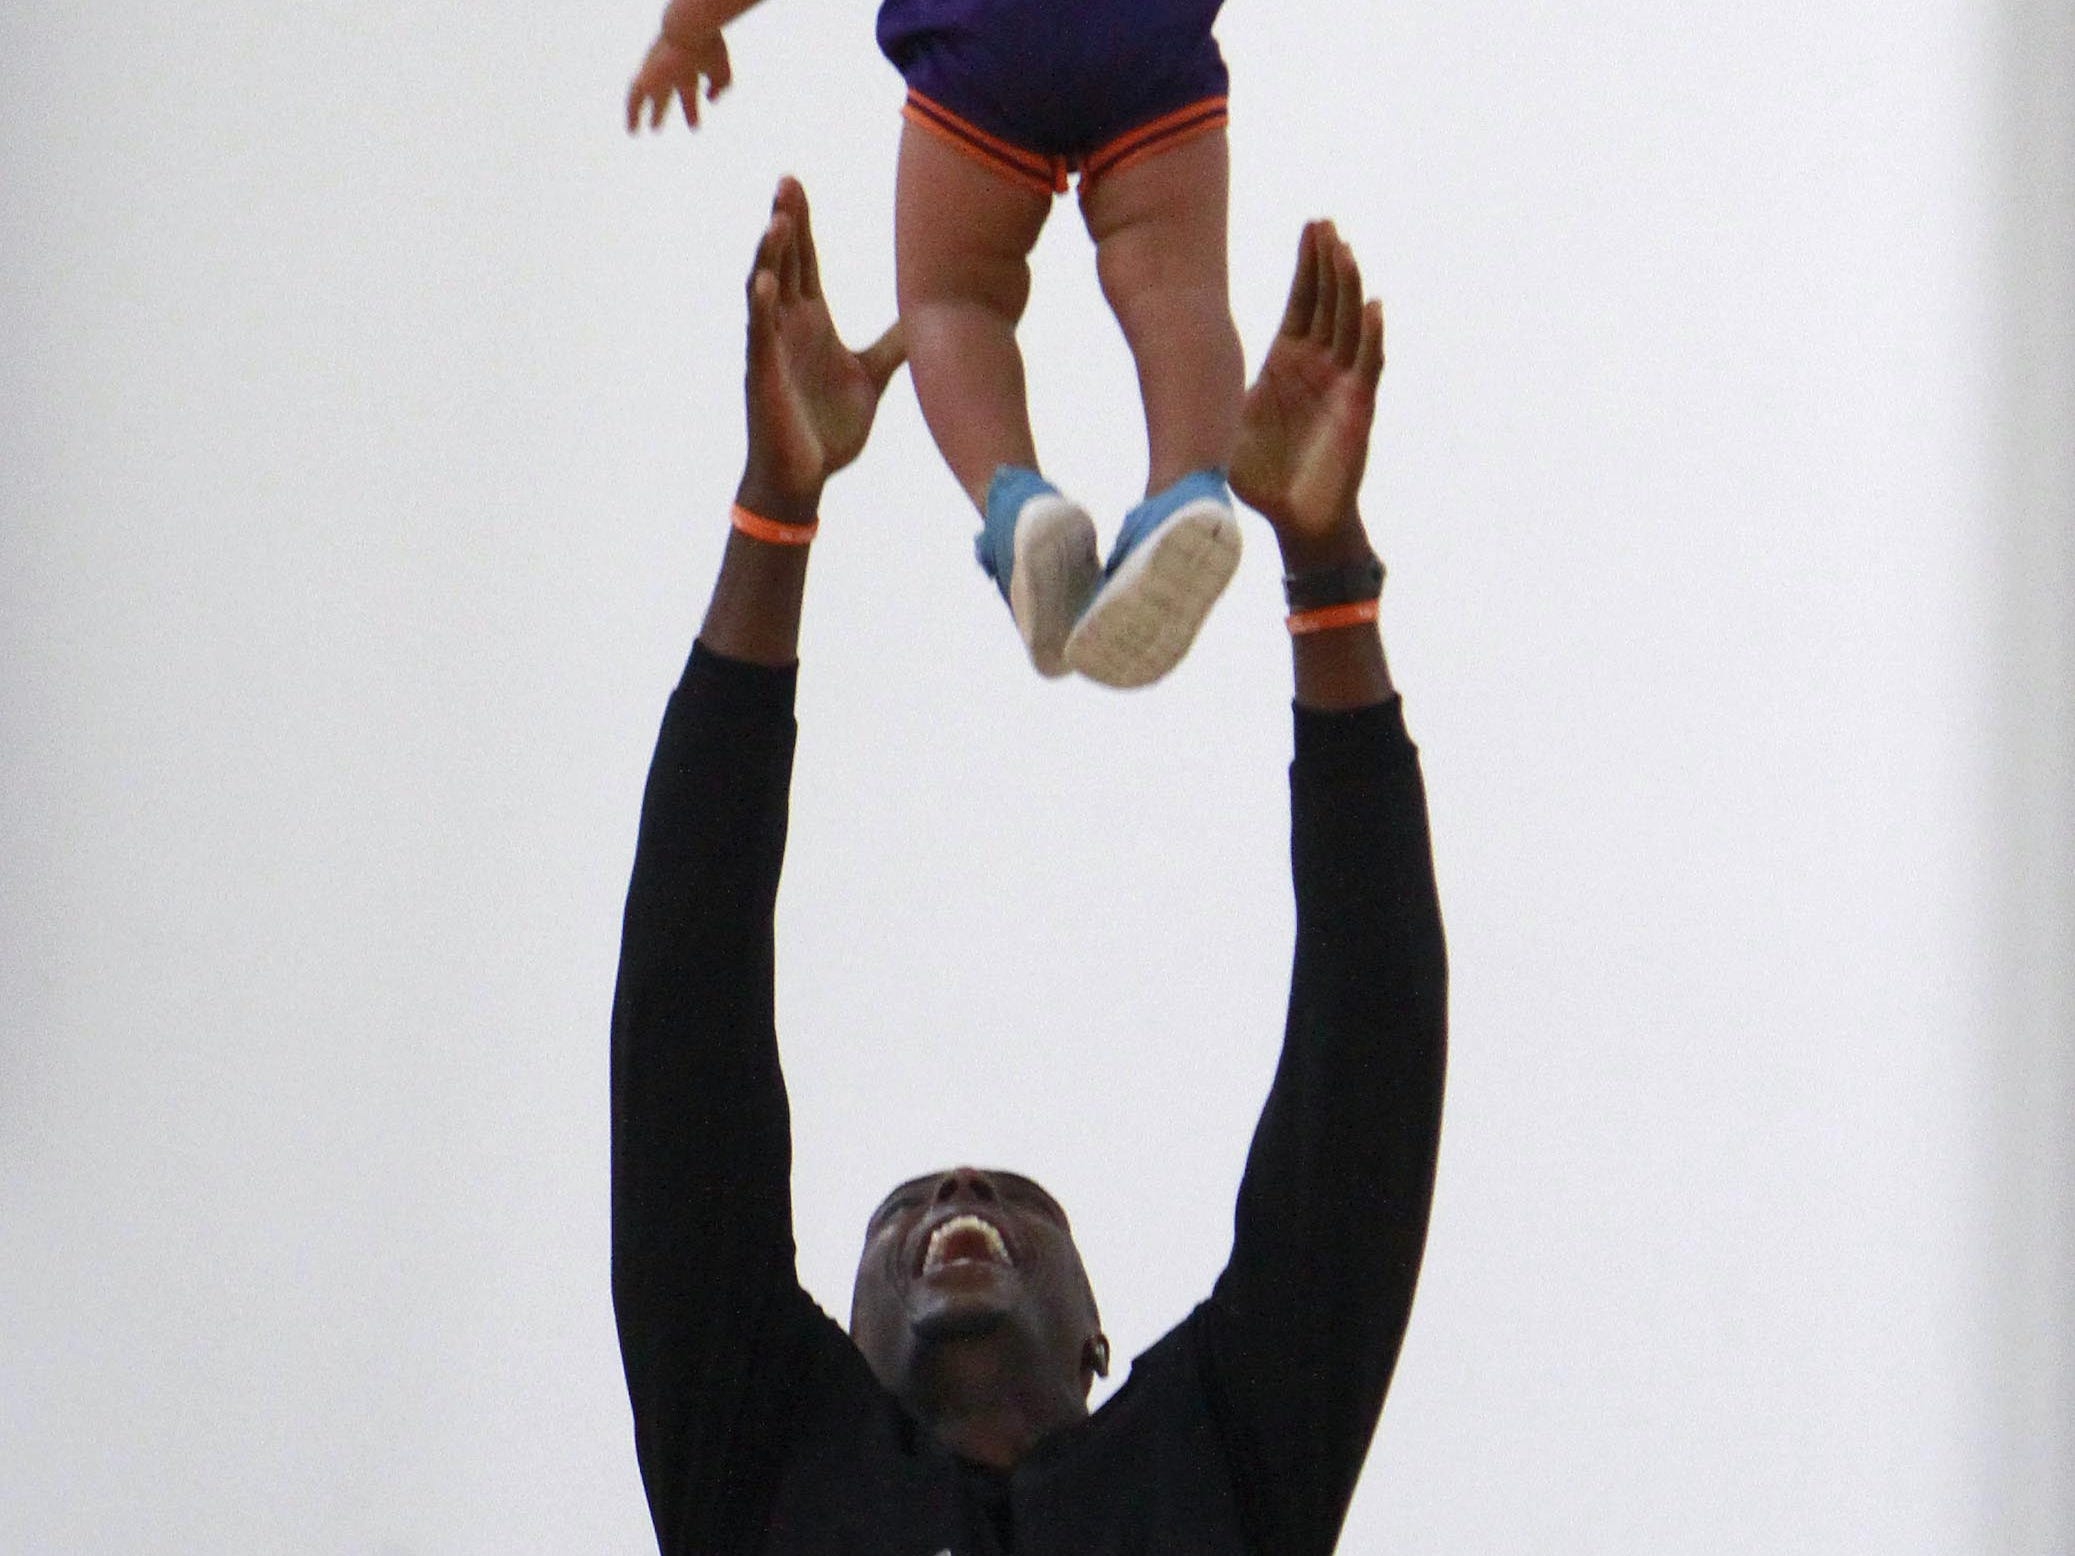 Phoenix Suns basketball player Anthony Tolliver tosses his son Isaiah, 1, into the air during his basketball camp at The Courts on Tuesday, July 22, 2014.